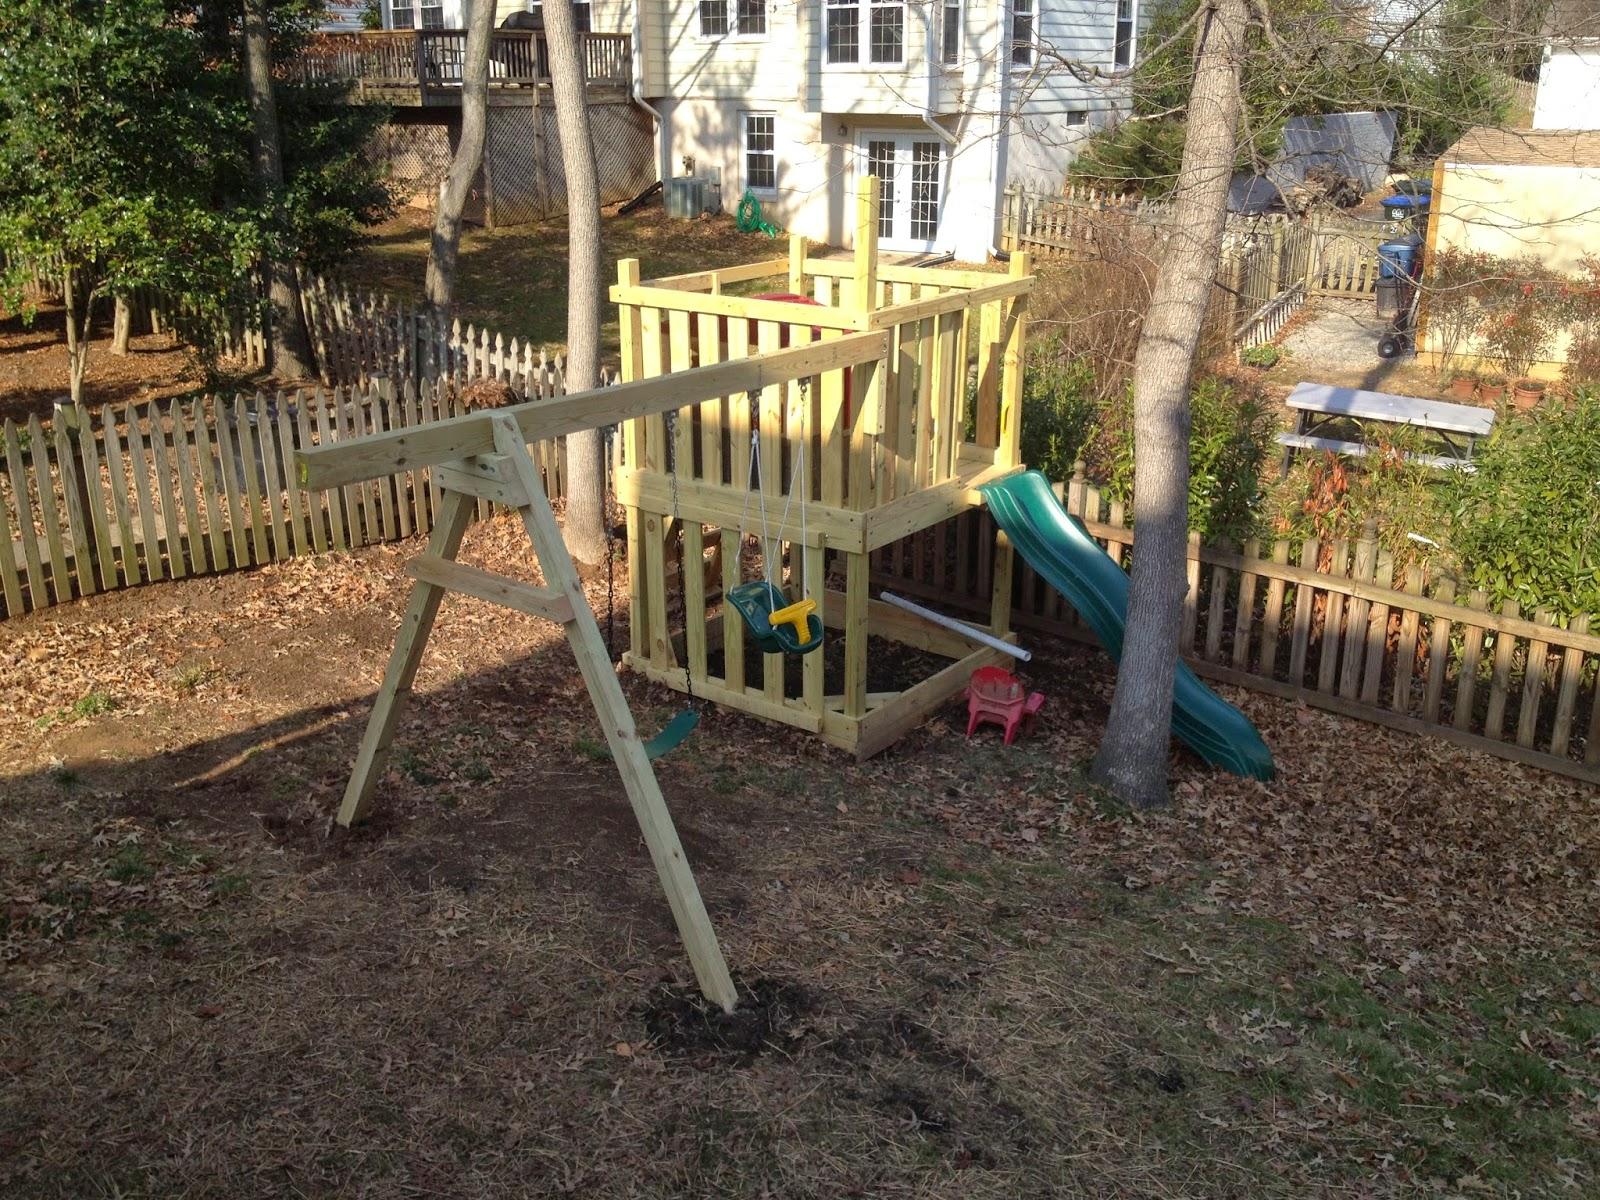 Using Smart Stuff To Do Dumb Things Building A Playground Without Spending A Fortune Part 4